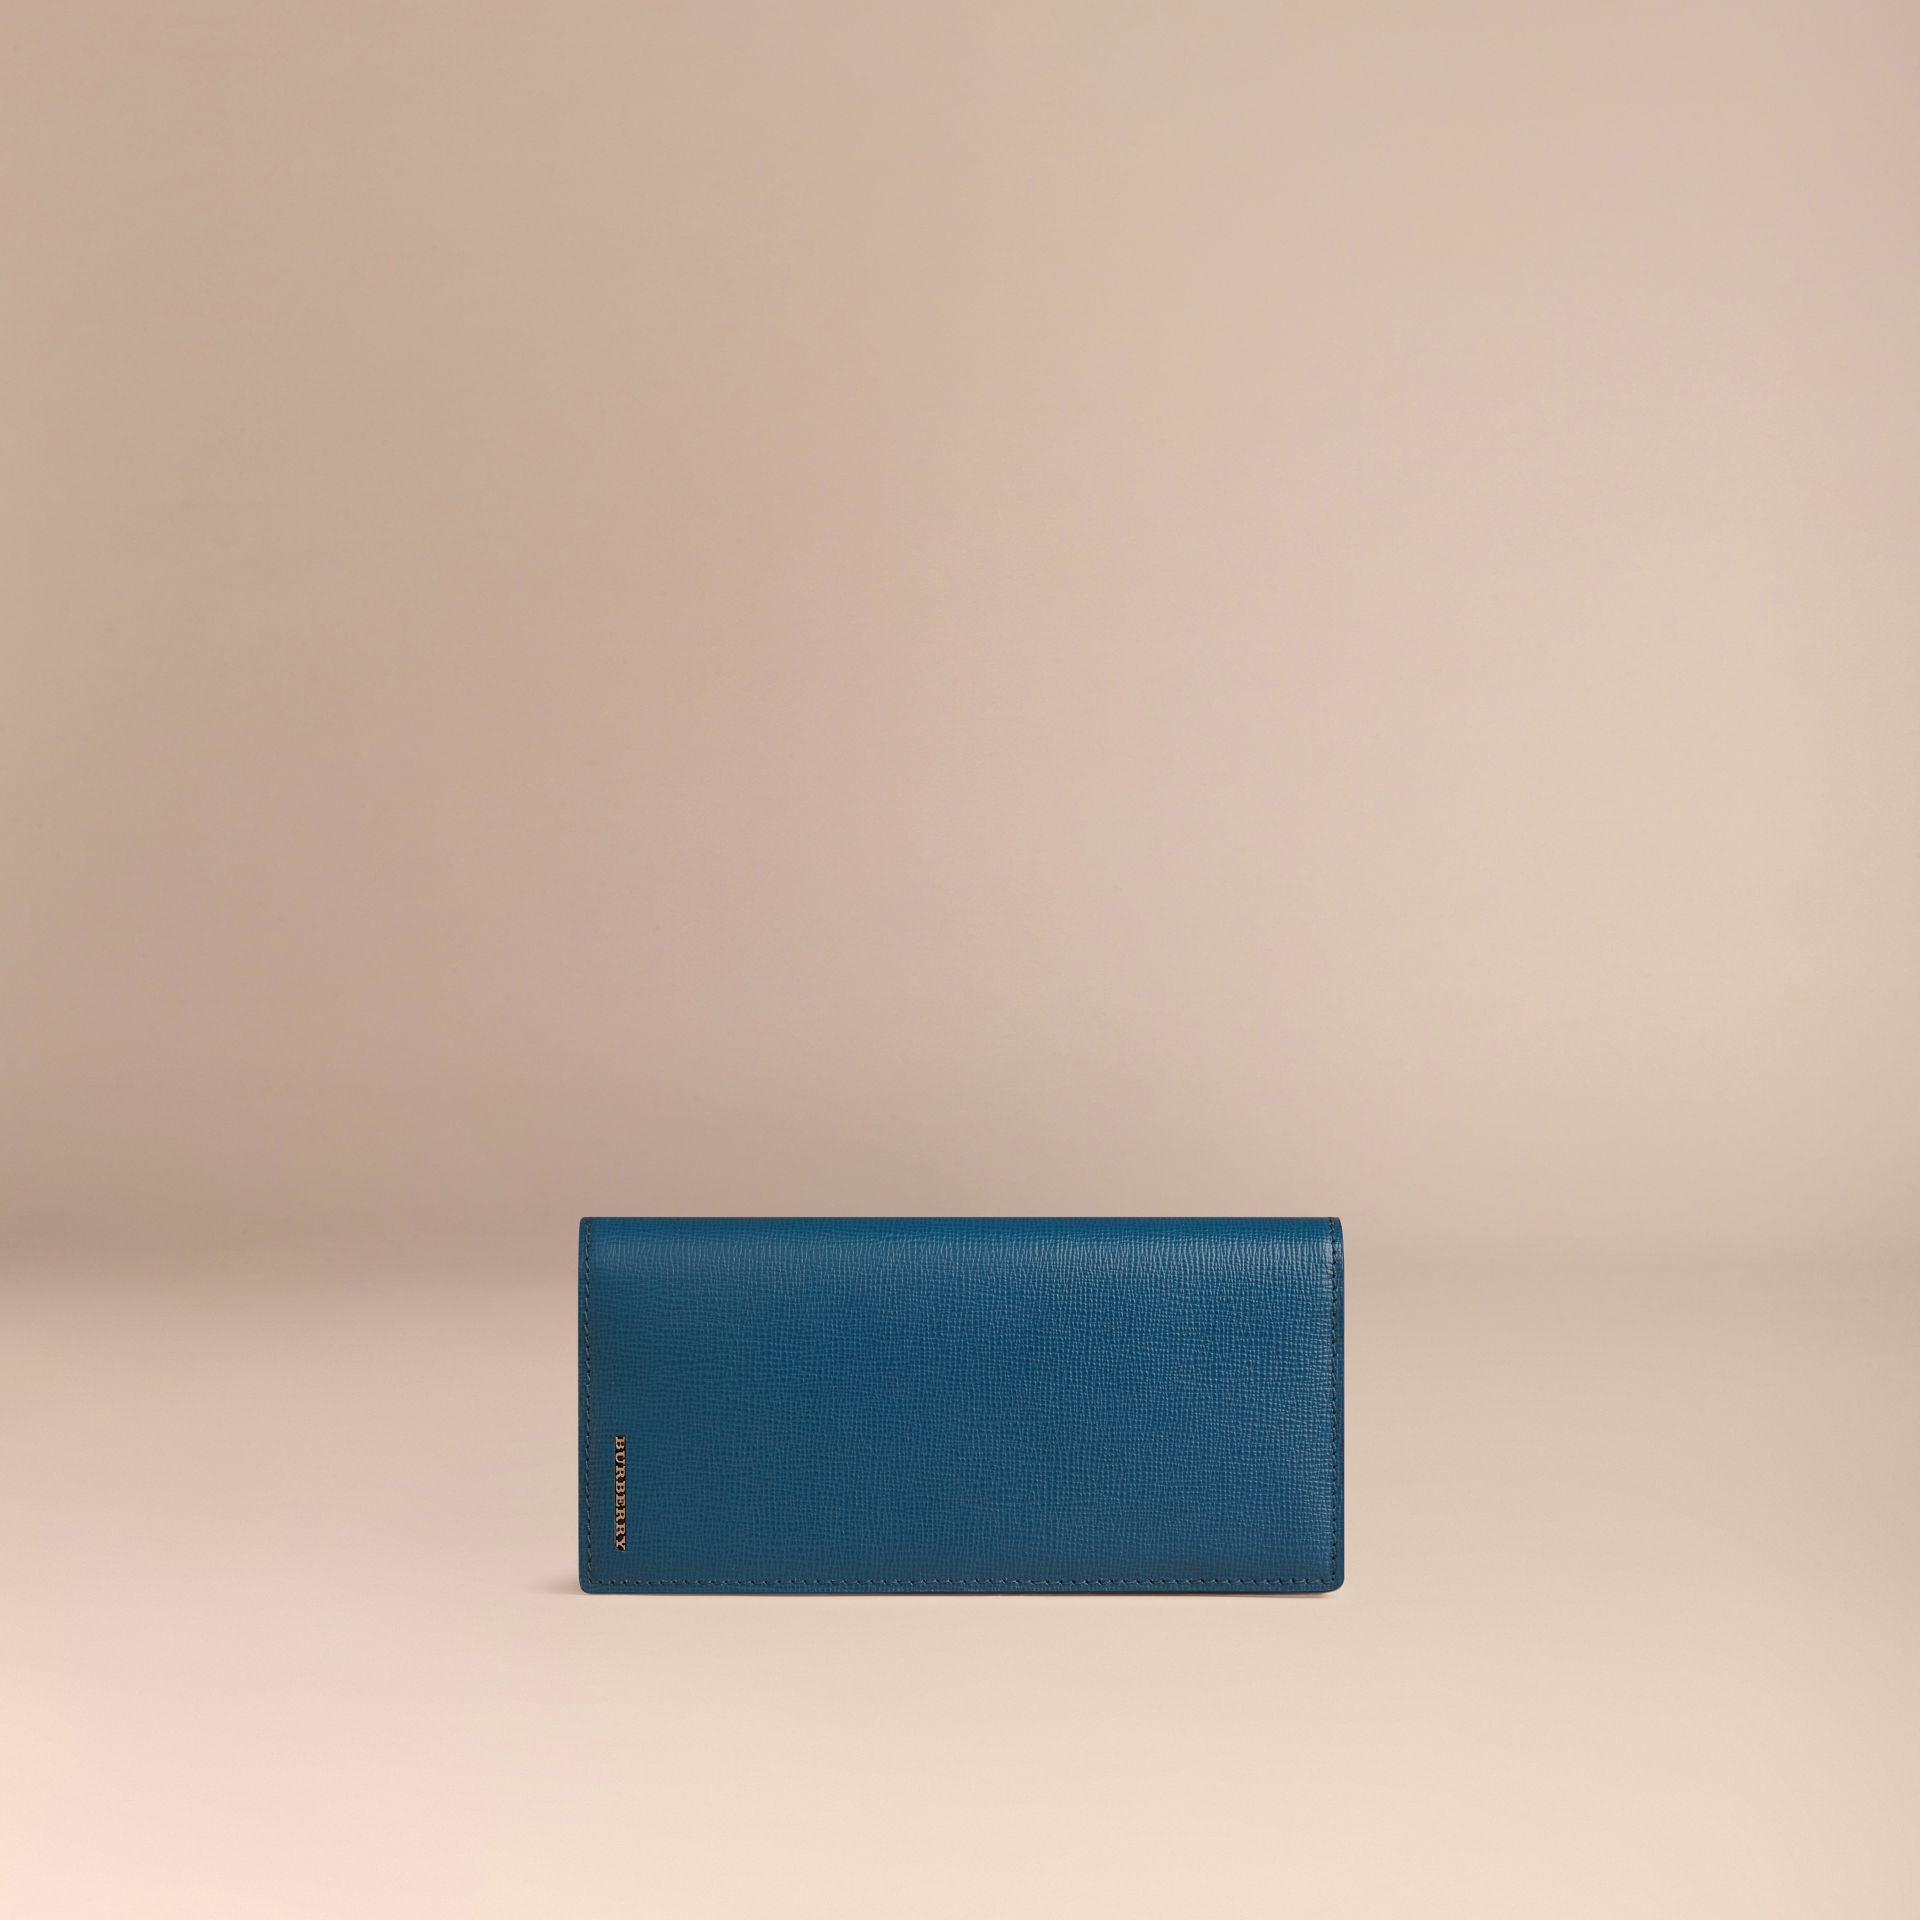 Mineral blue London Leather Continental Wallet Mineral Blue - gallery image 3